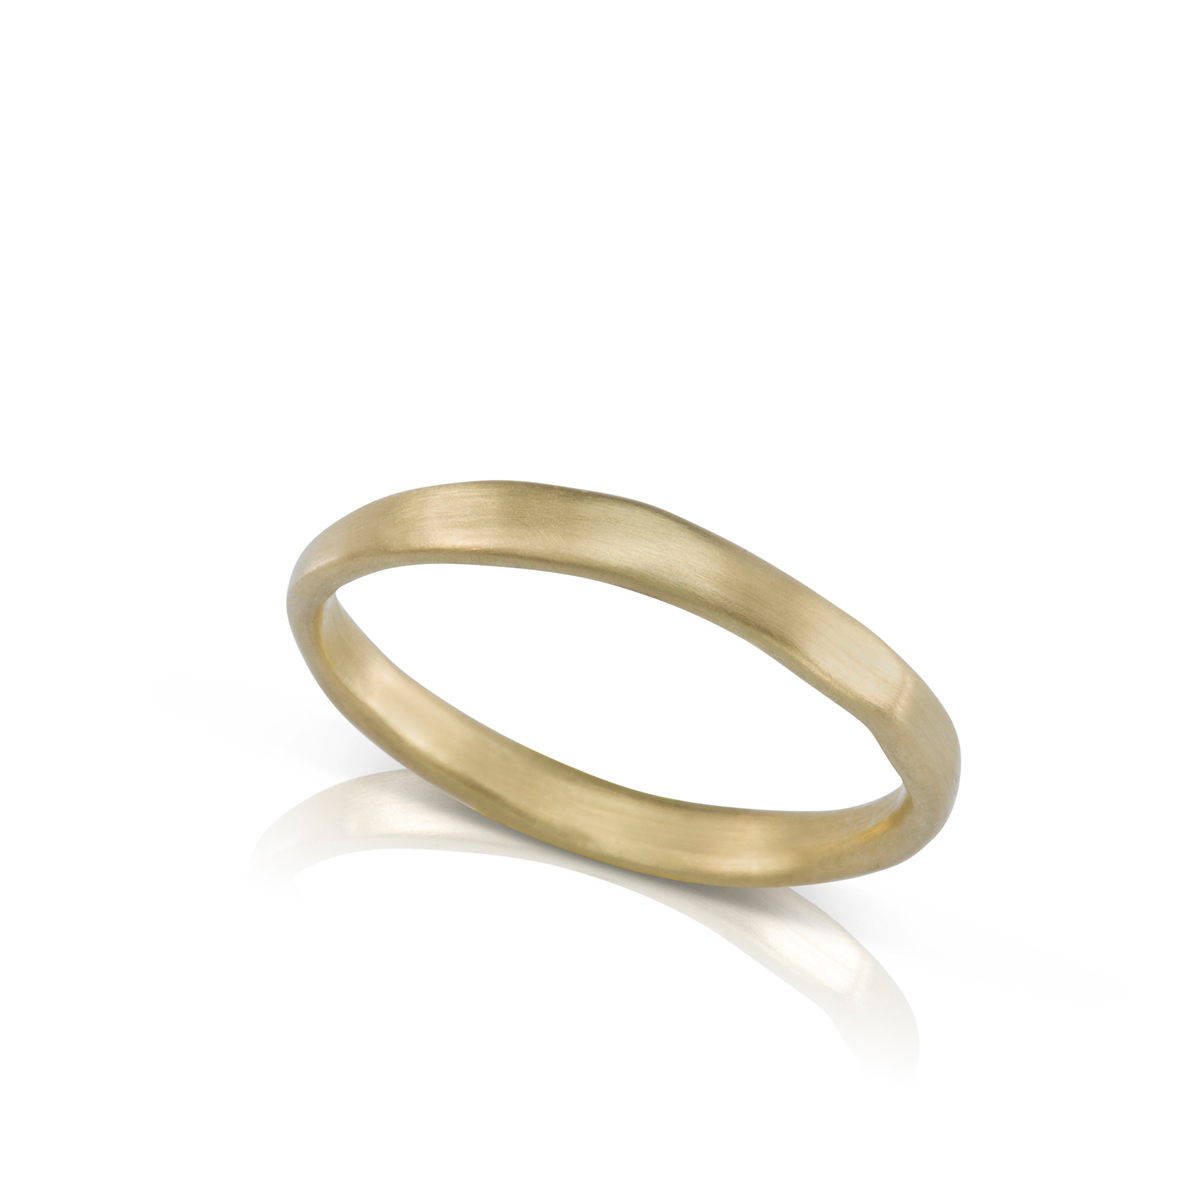 Thin gold ring in an asymmetrical handmade style